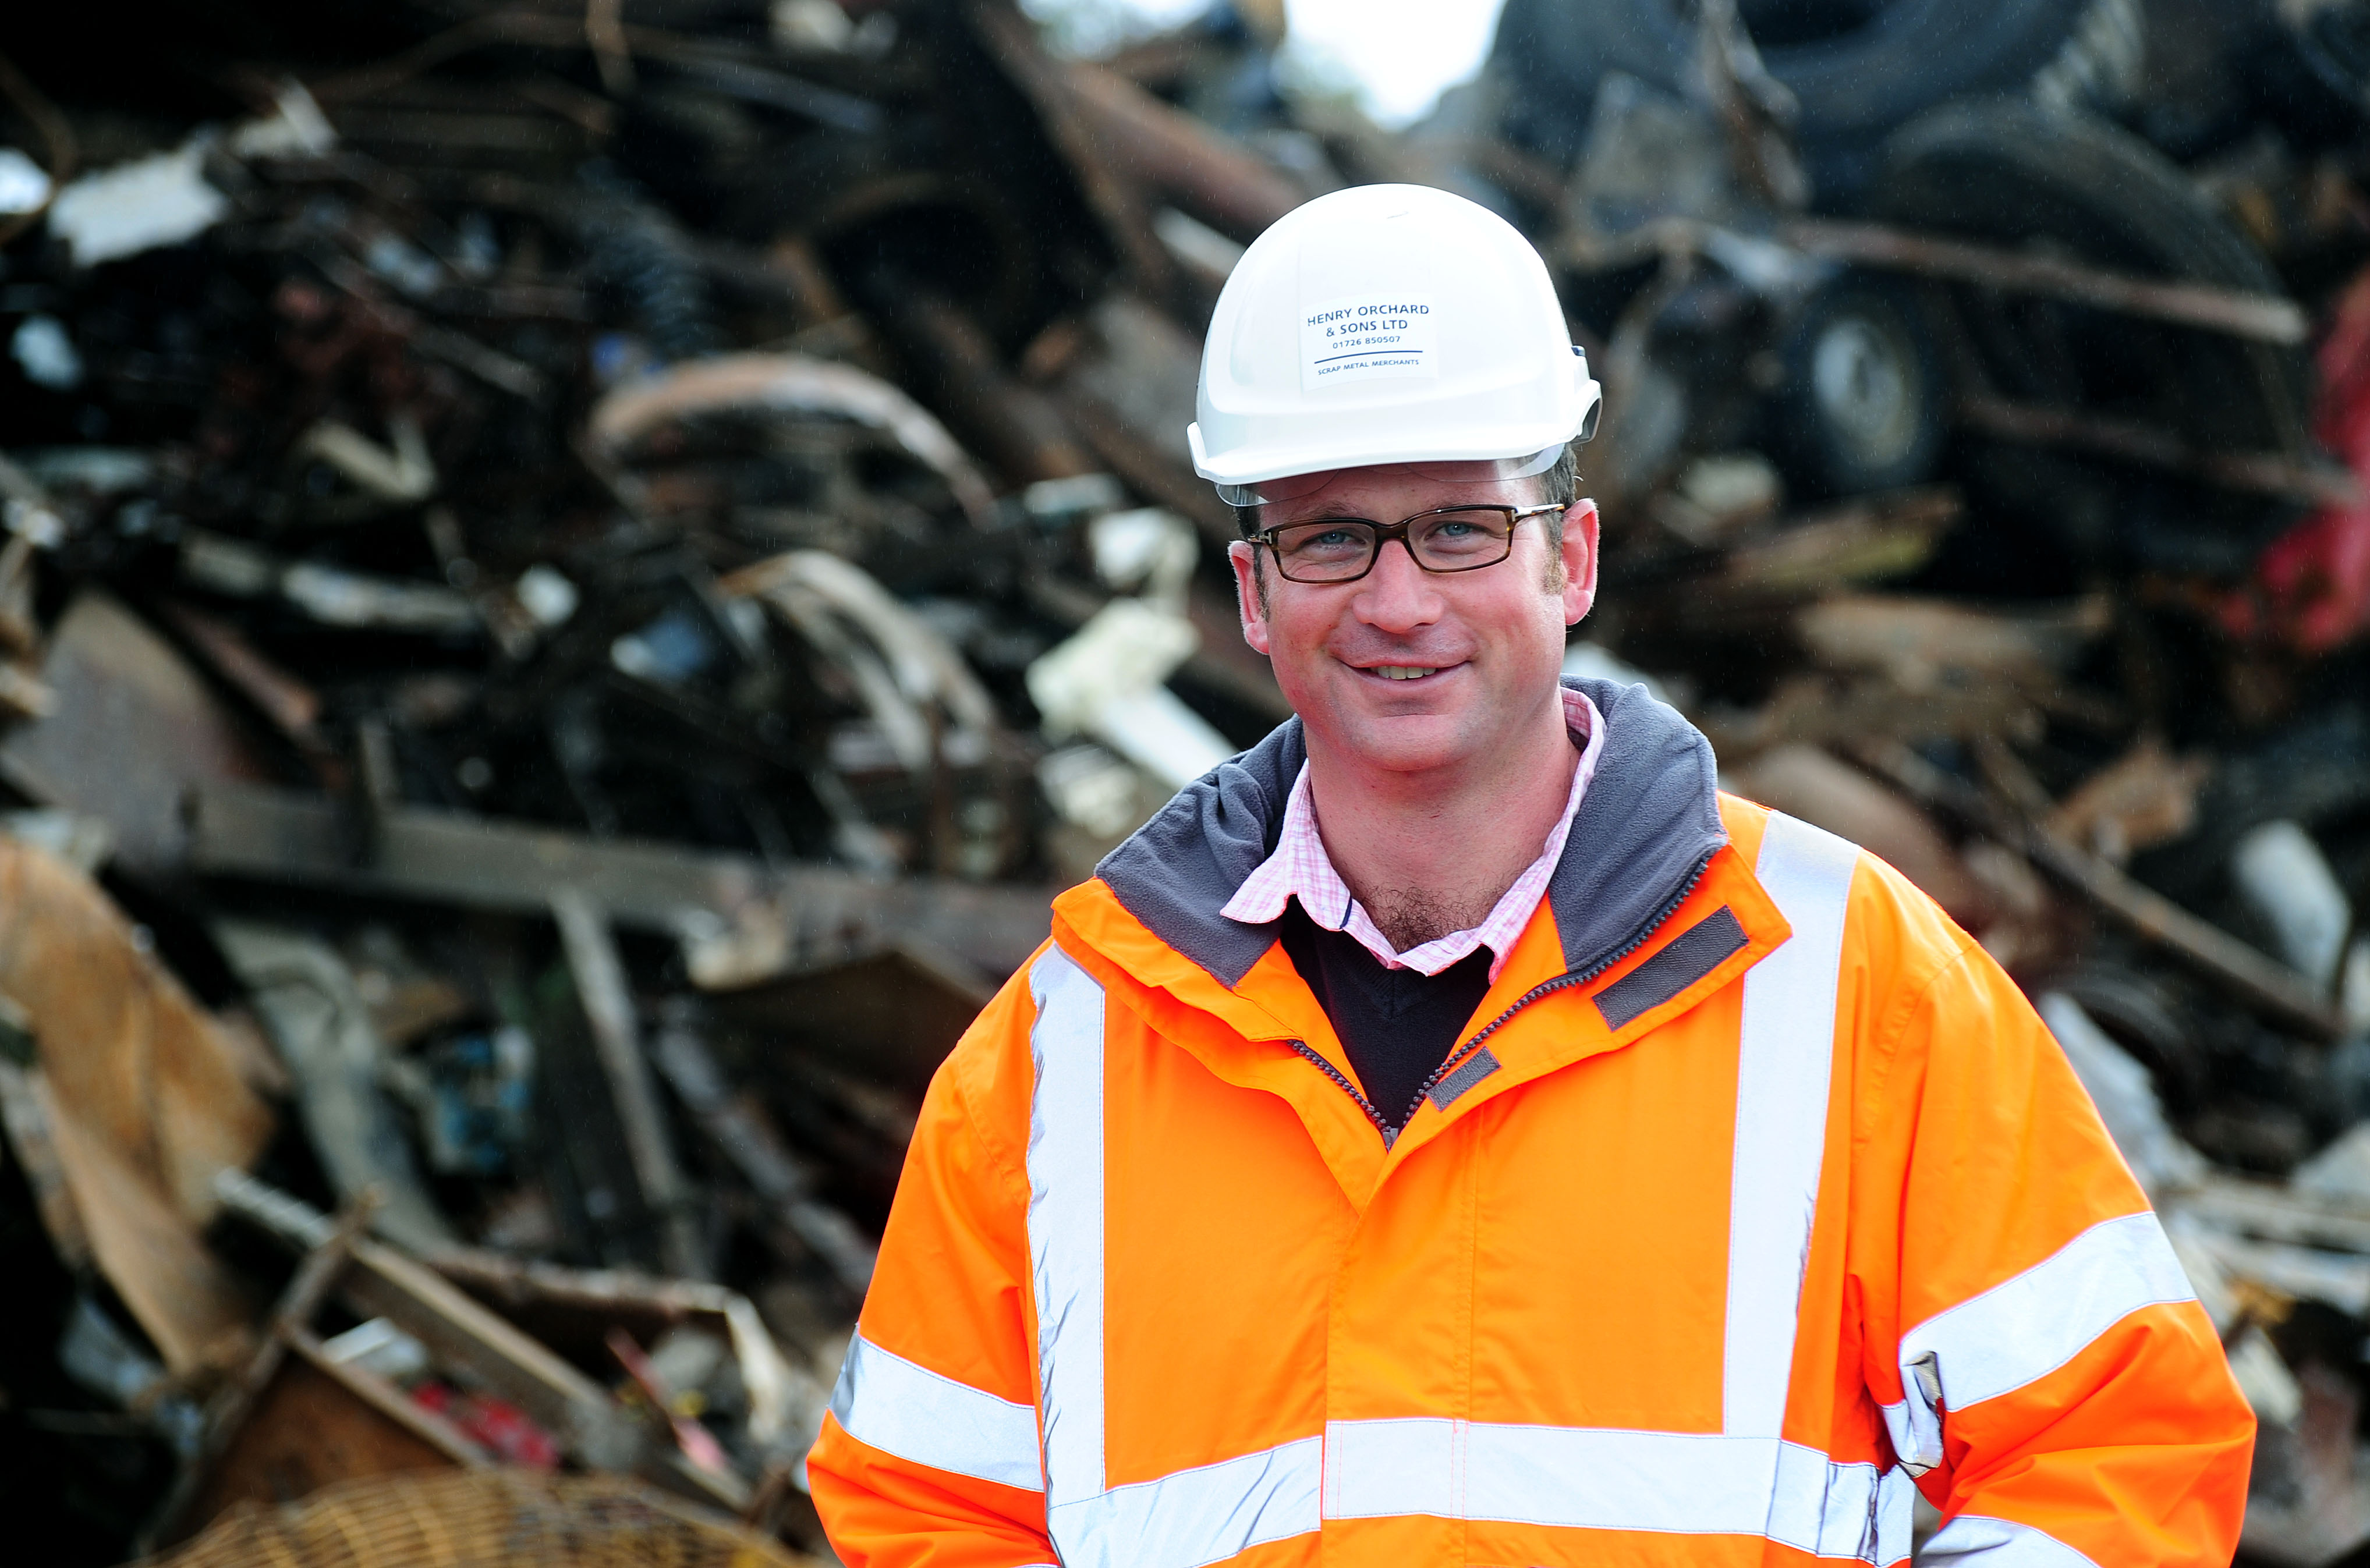 Henry Orchard and Sons' managing director, Henry Orchard. The St Austell-based scrap metal dealer will making cashless payments from Friday, December 7, when new Government legislation comes into place.